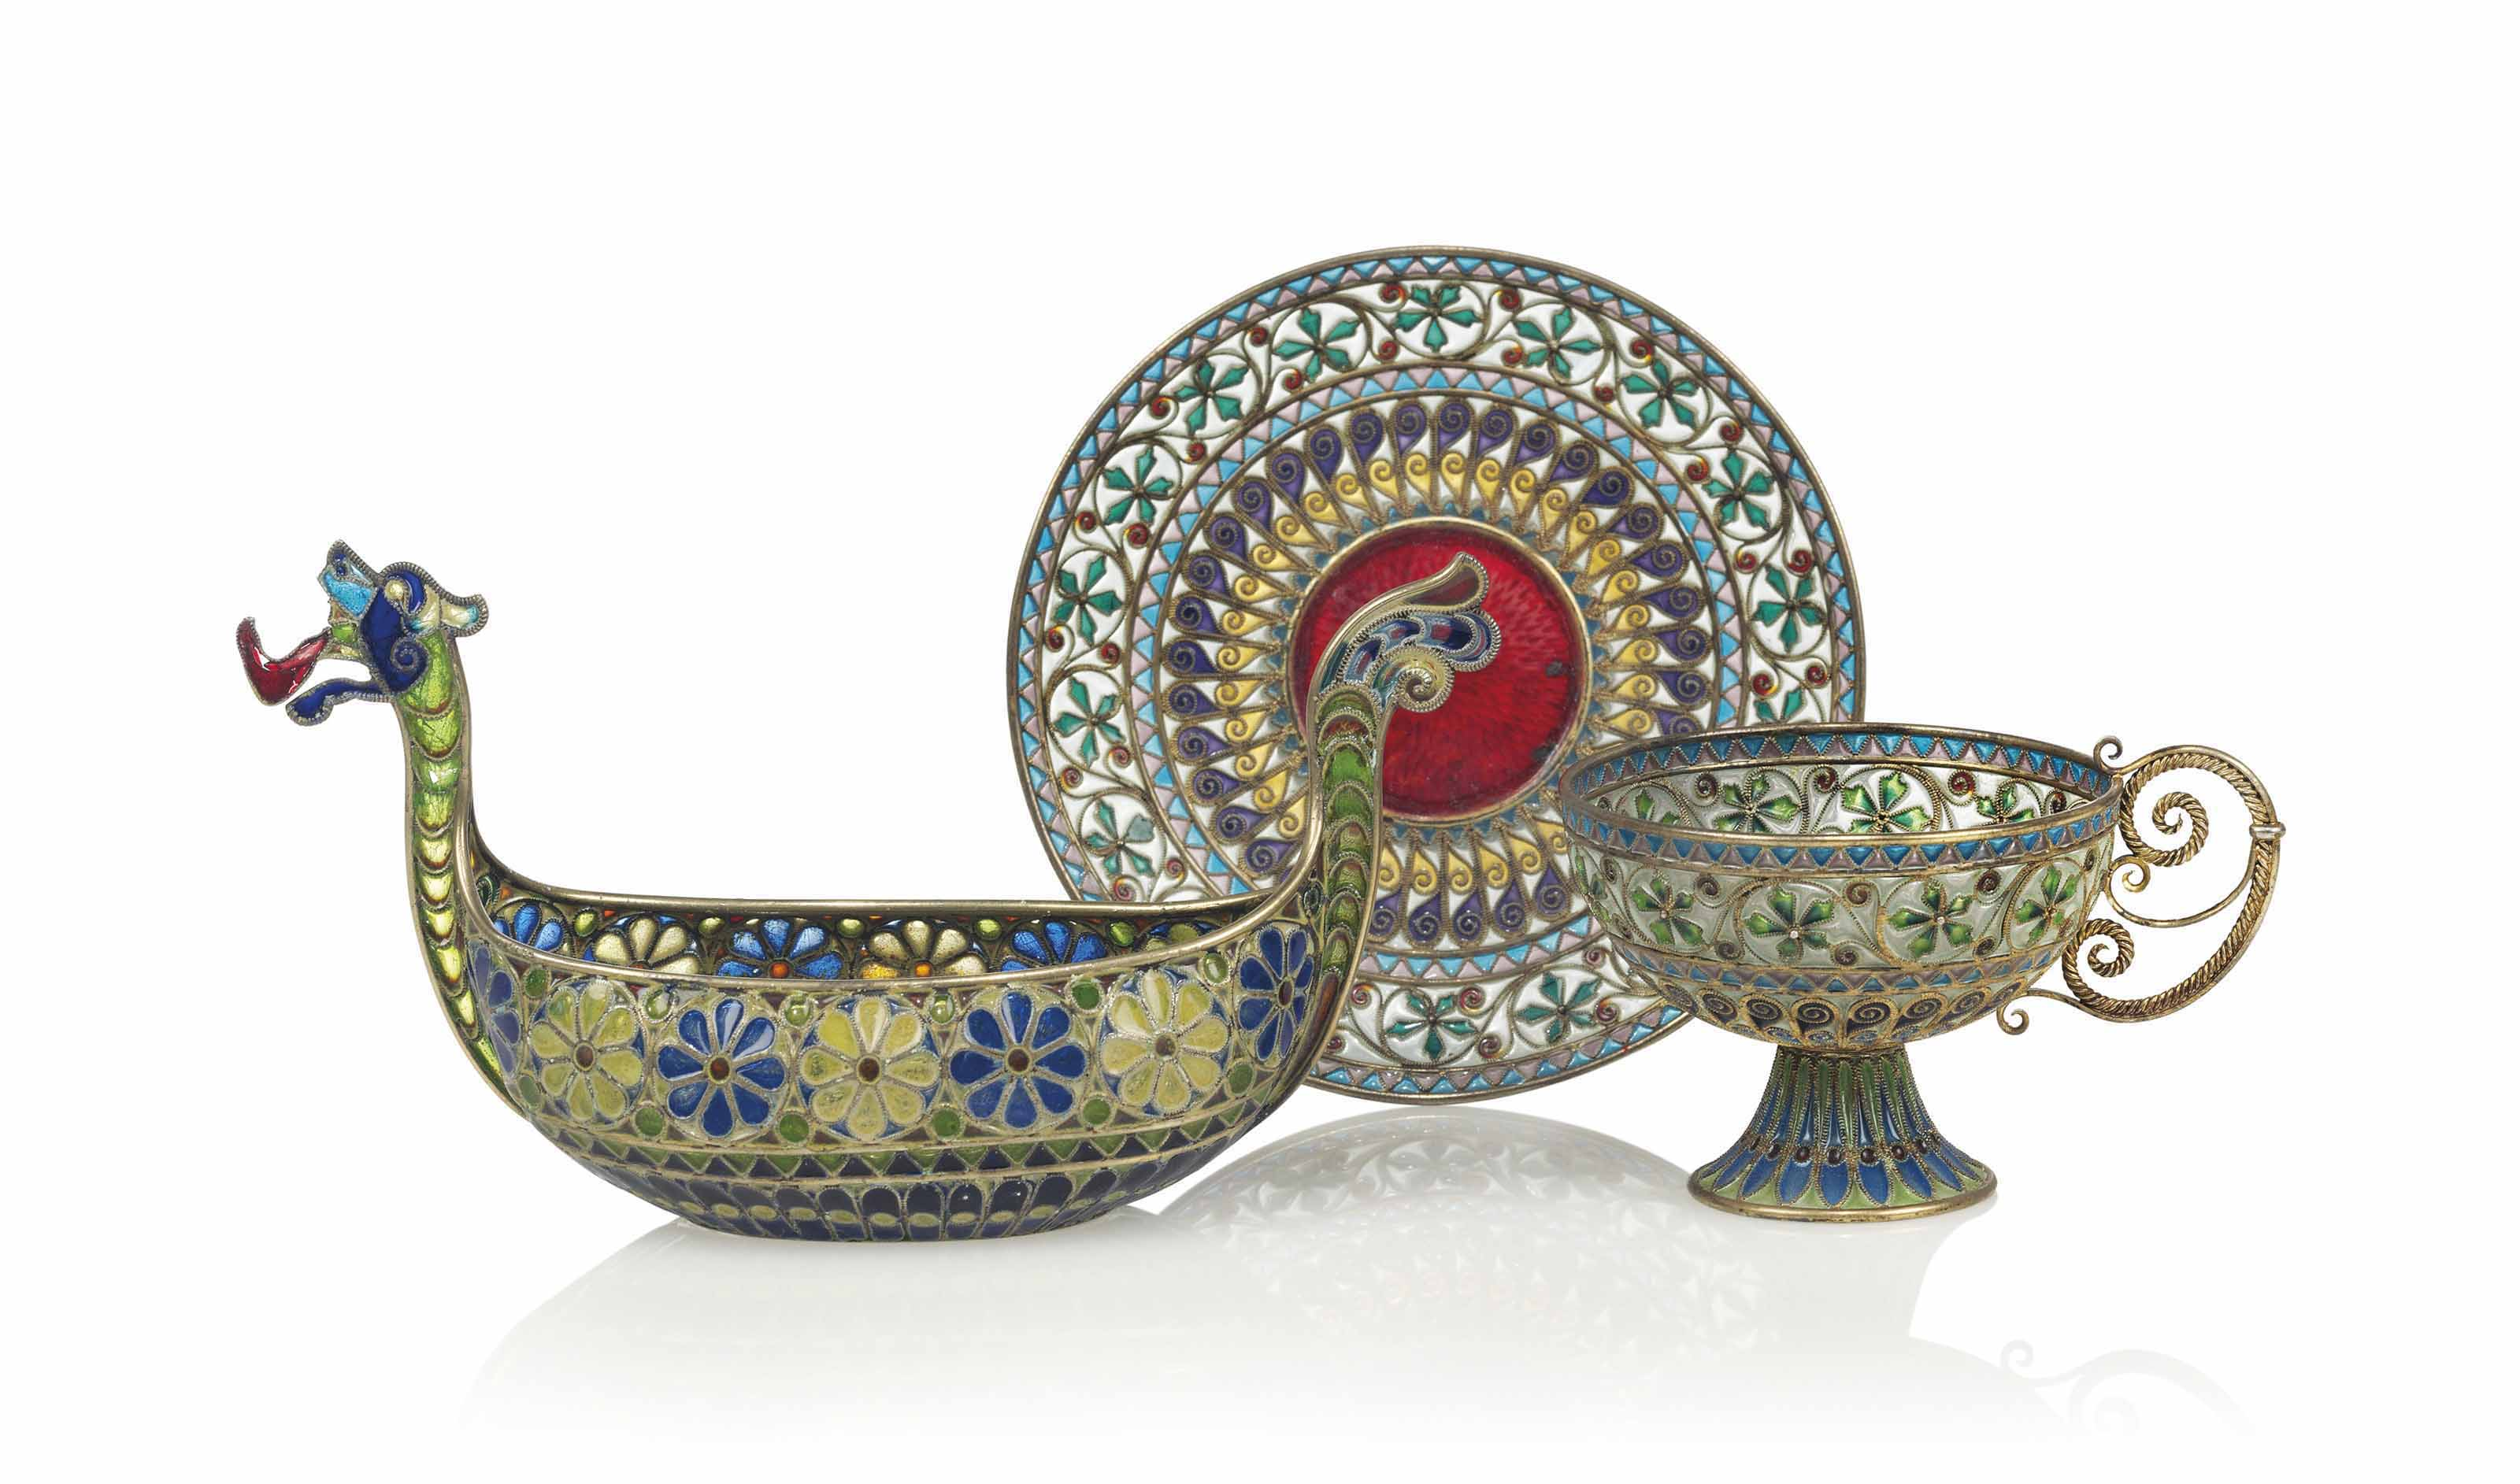 A NORWEGIAN SILVER-GILT AND PLIQUE-A-JOUR CUP AND SAUCER